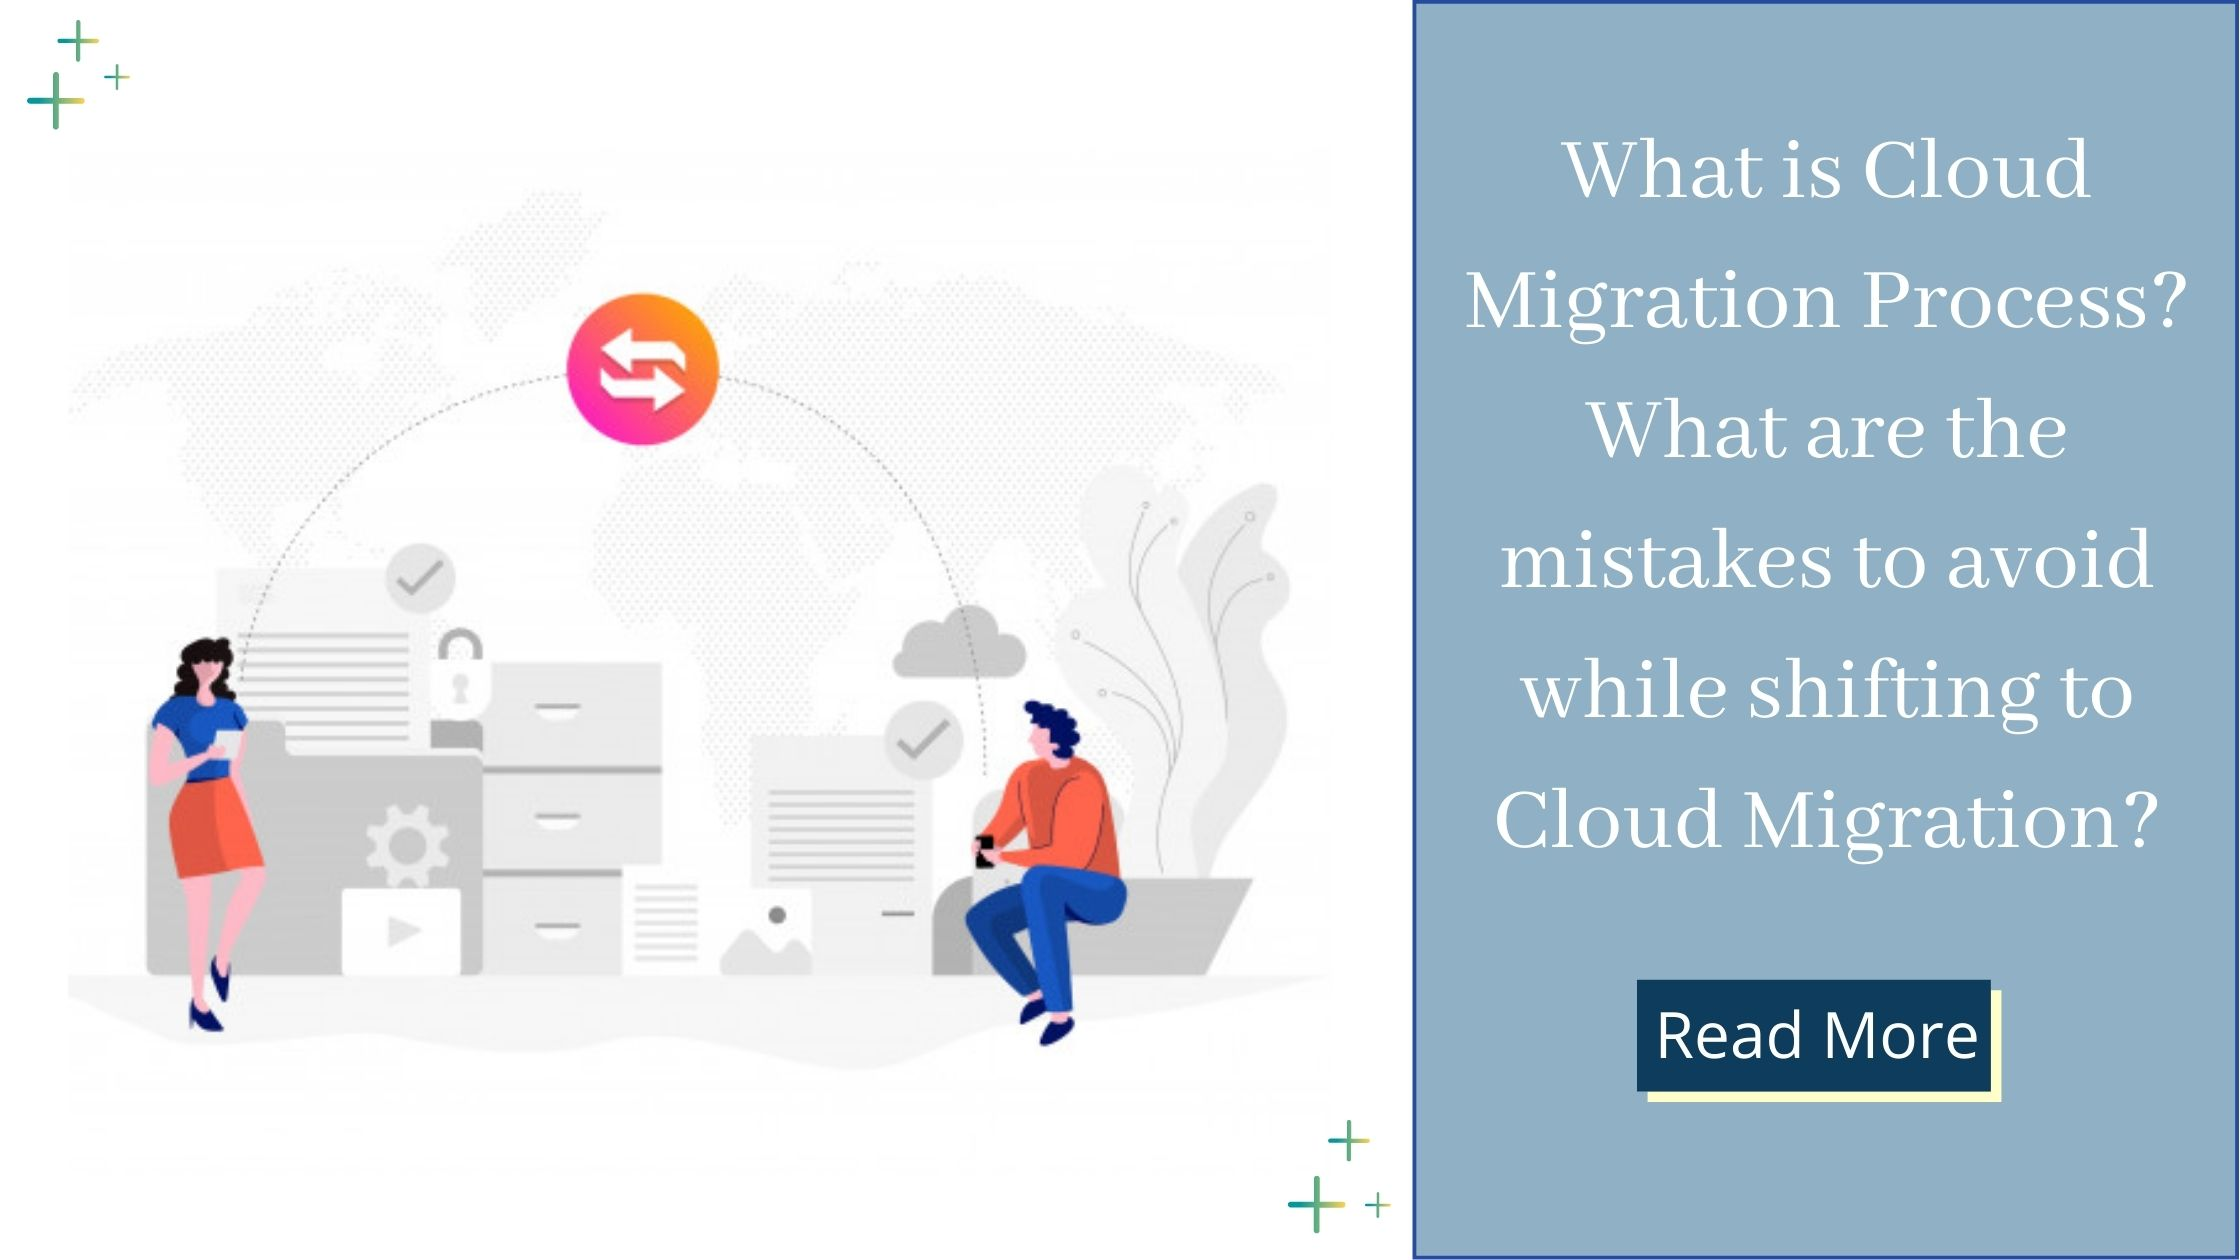 Cloud migration & mistakes to avoid